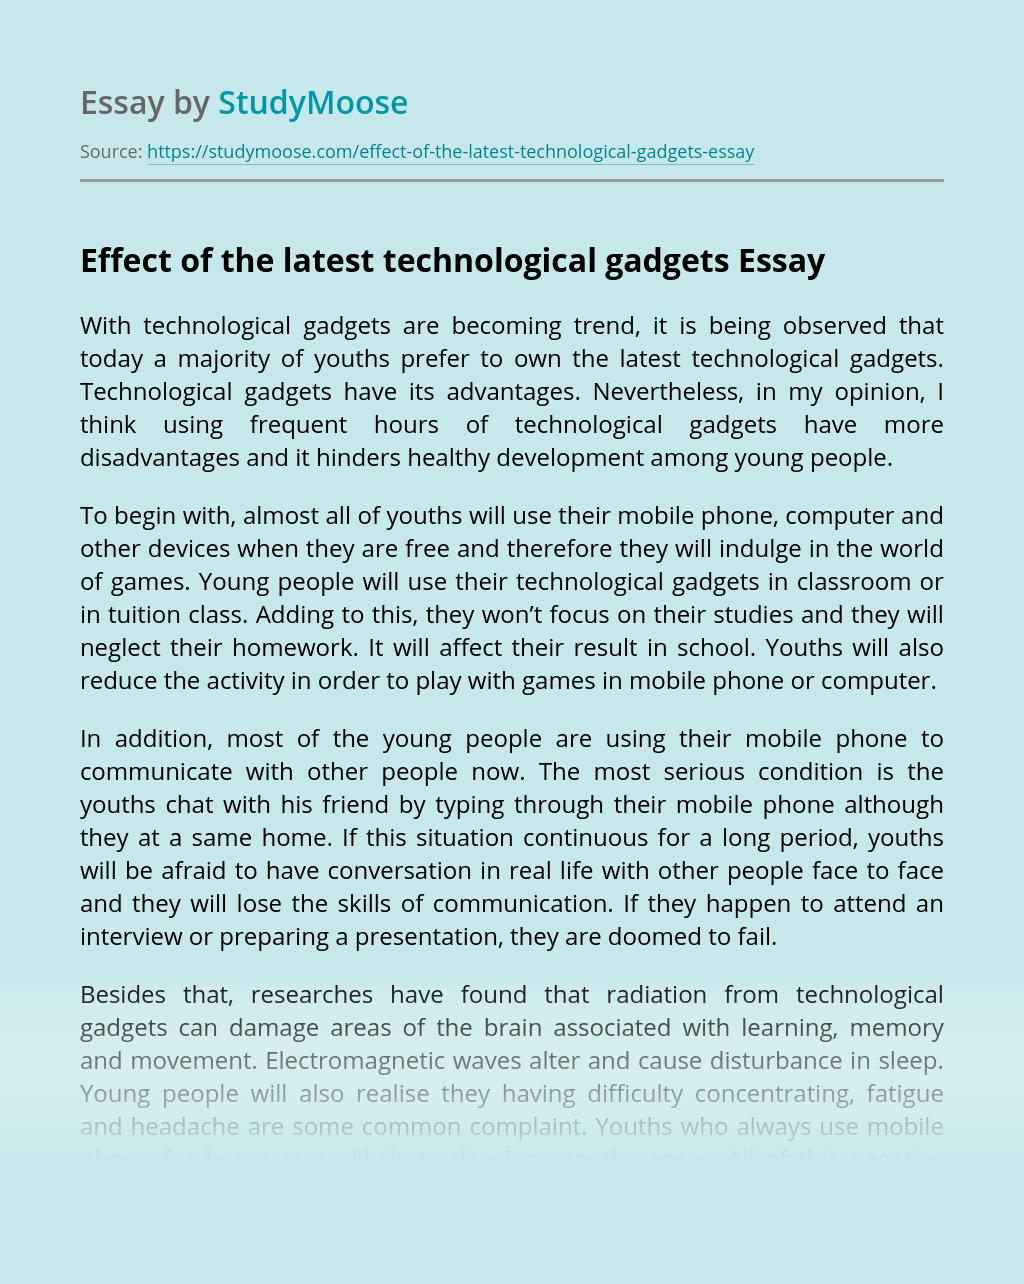 Effect of the latest technological gadgets